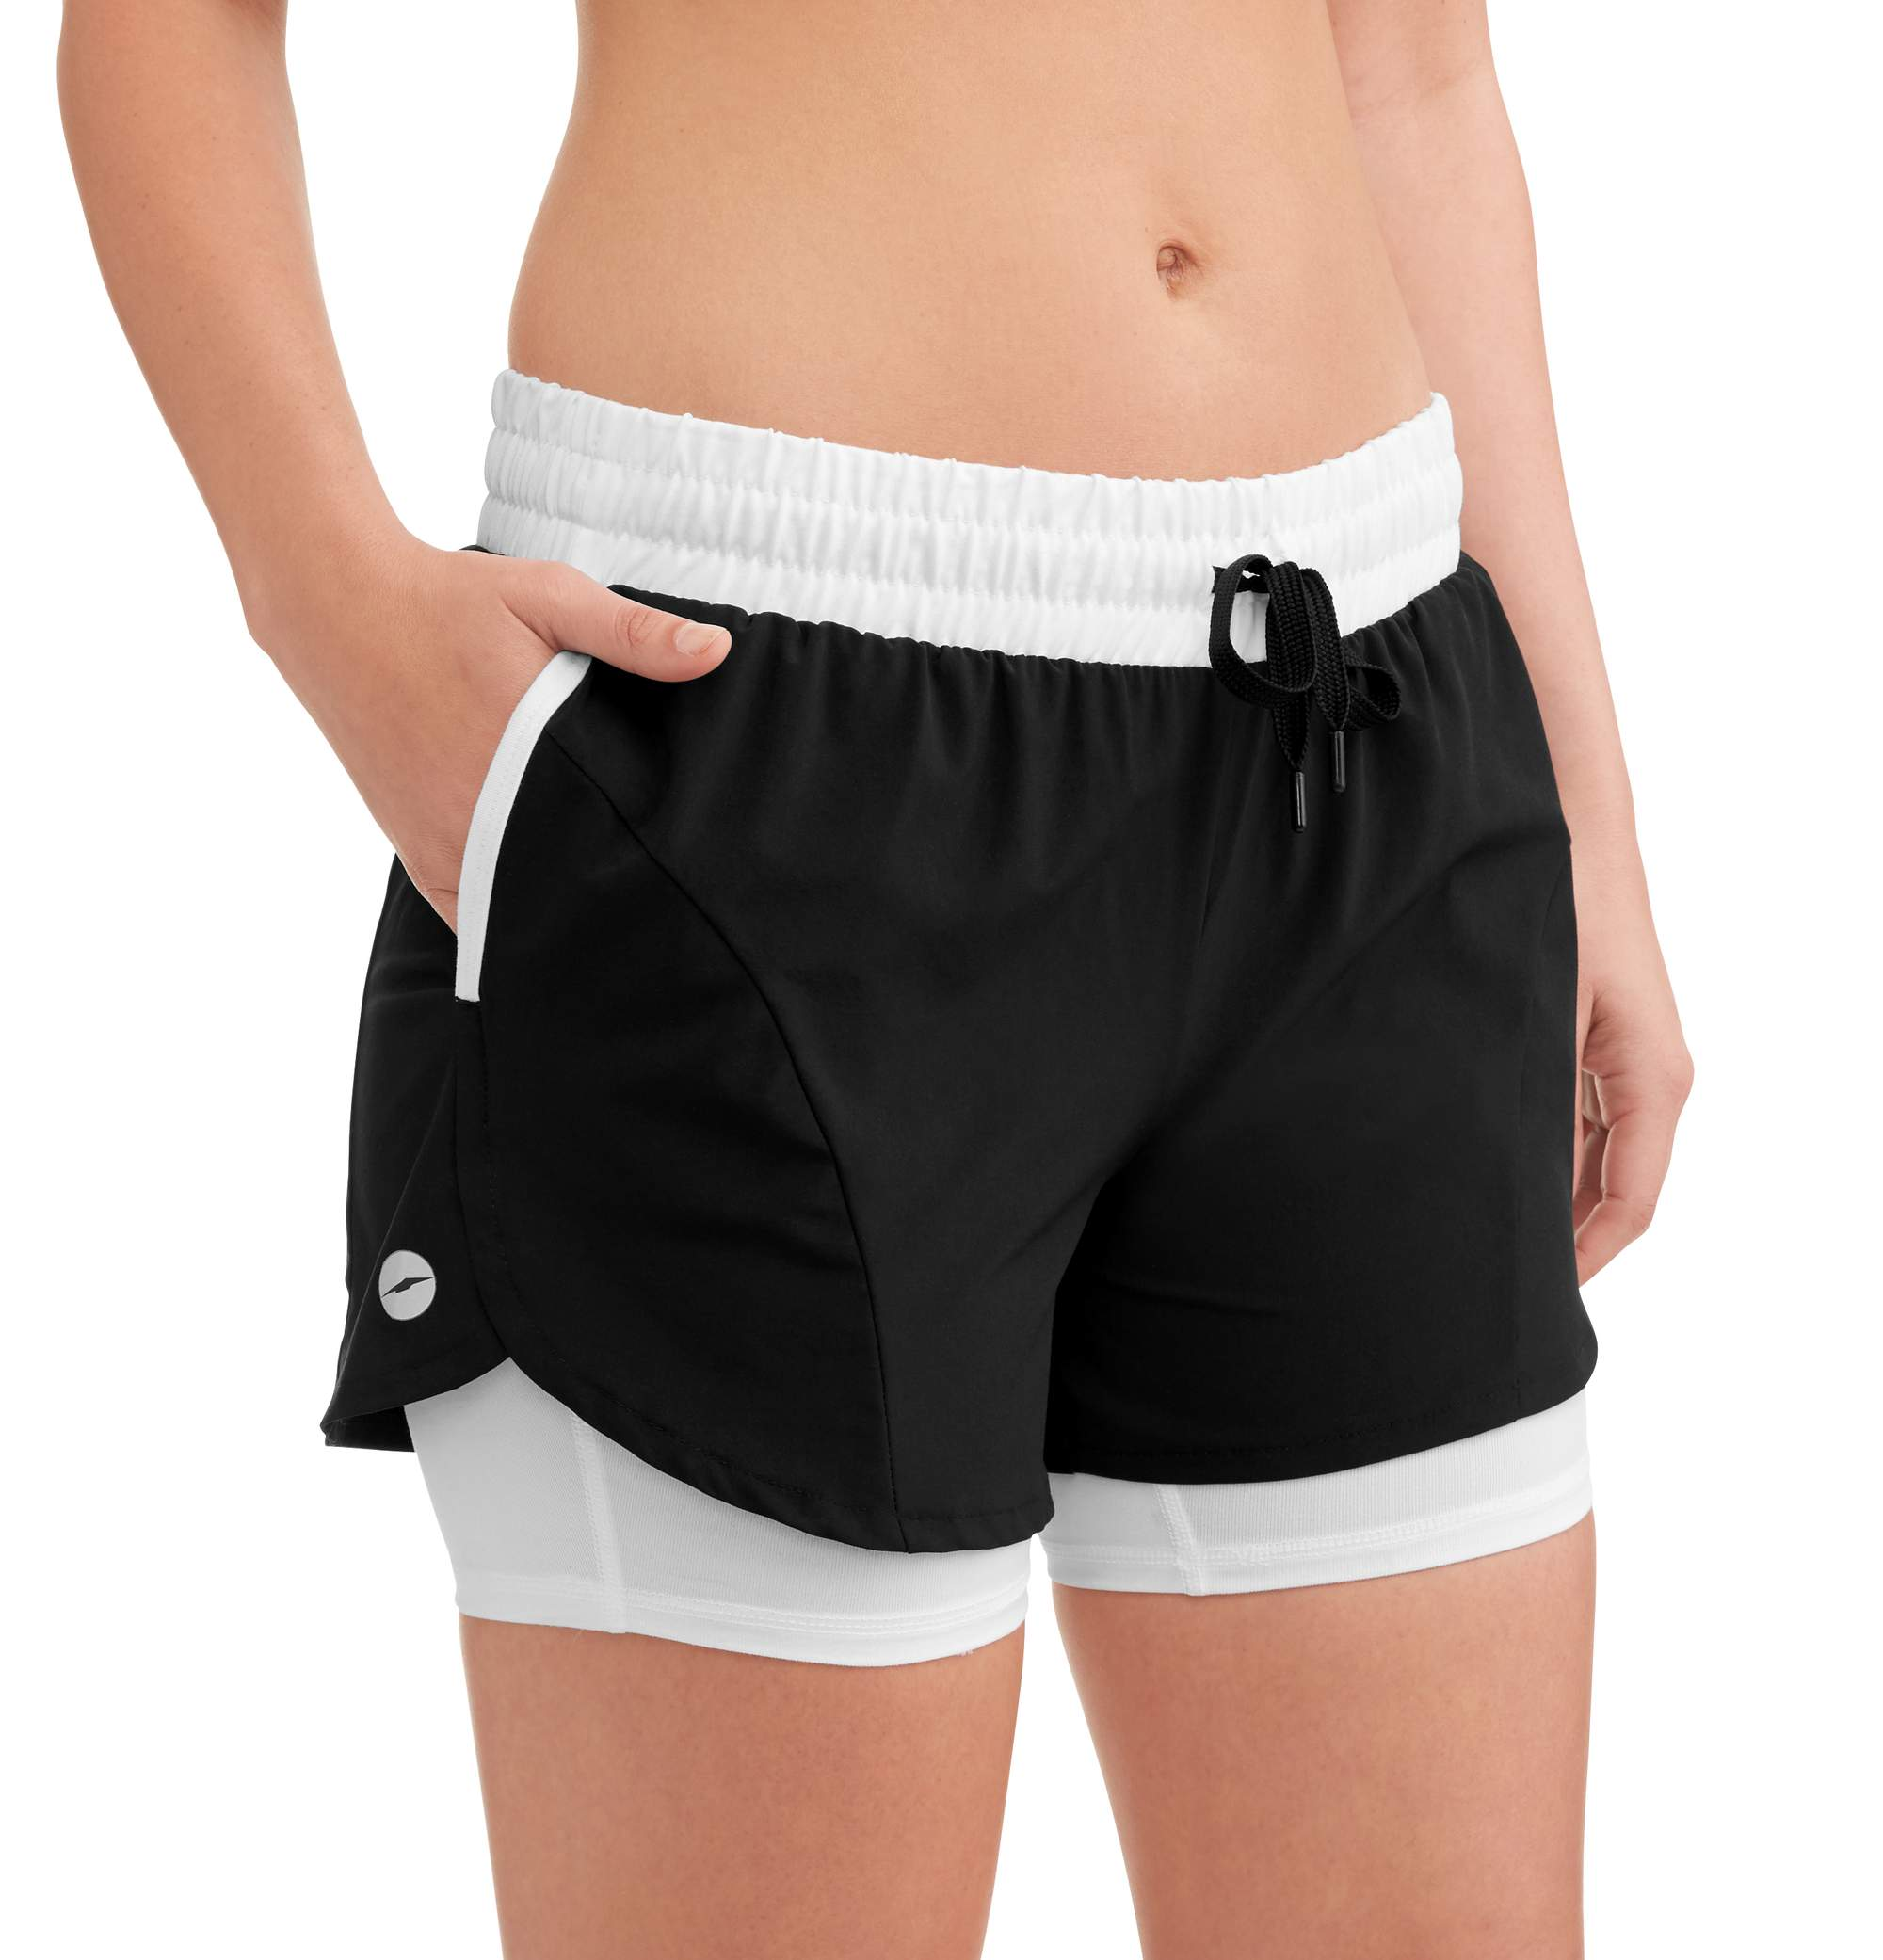 Avia Women's Core Active 2fer Woven Running Short with Pockets